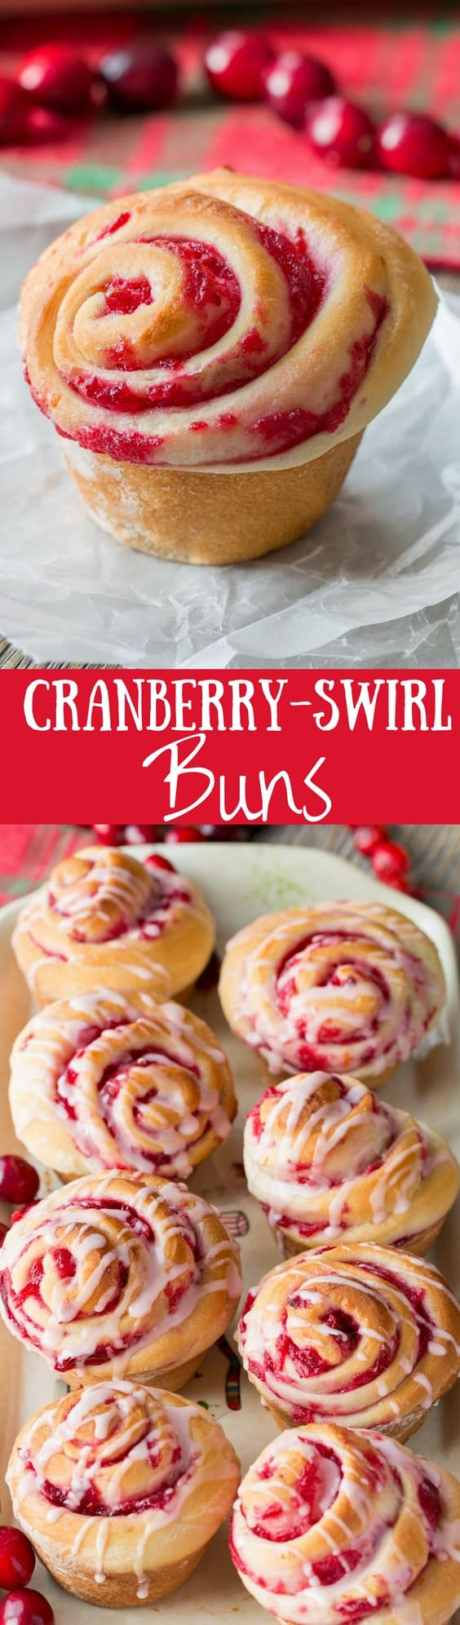 Cranberry Swirl Buns - soft almond scented yeast buns swirled with a fresh cranberry filling then topped with a simple drizzle of fresh orange juice mixed with confectioners' sugar | www.savingdessert.com